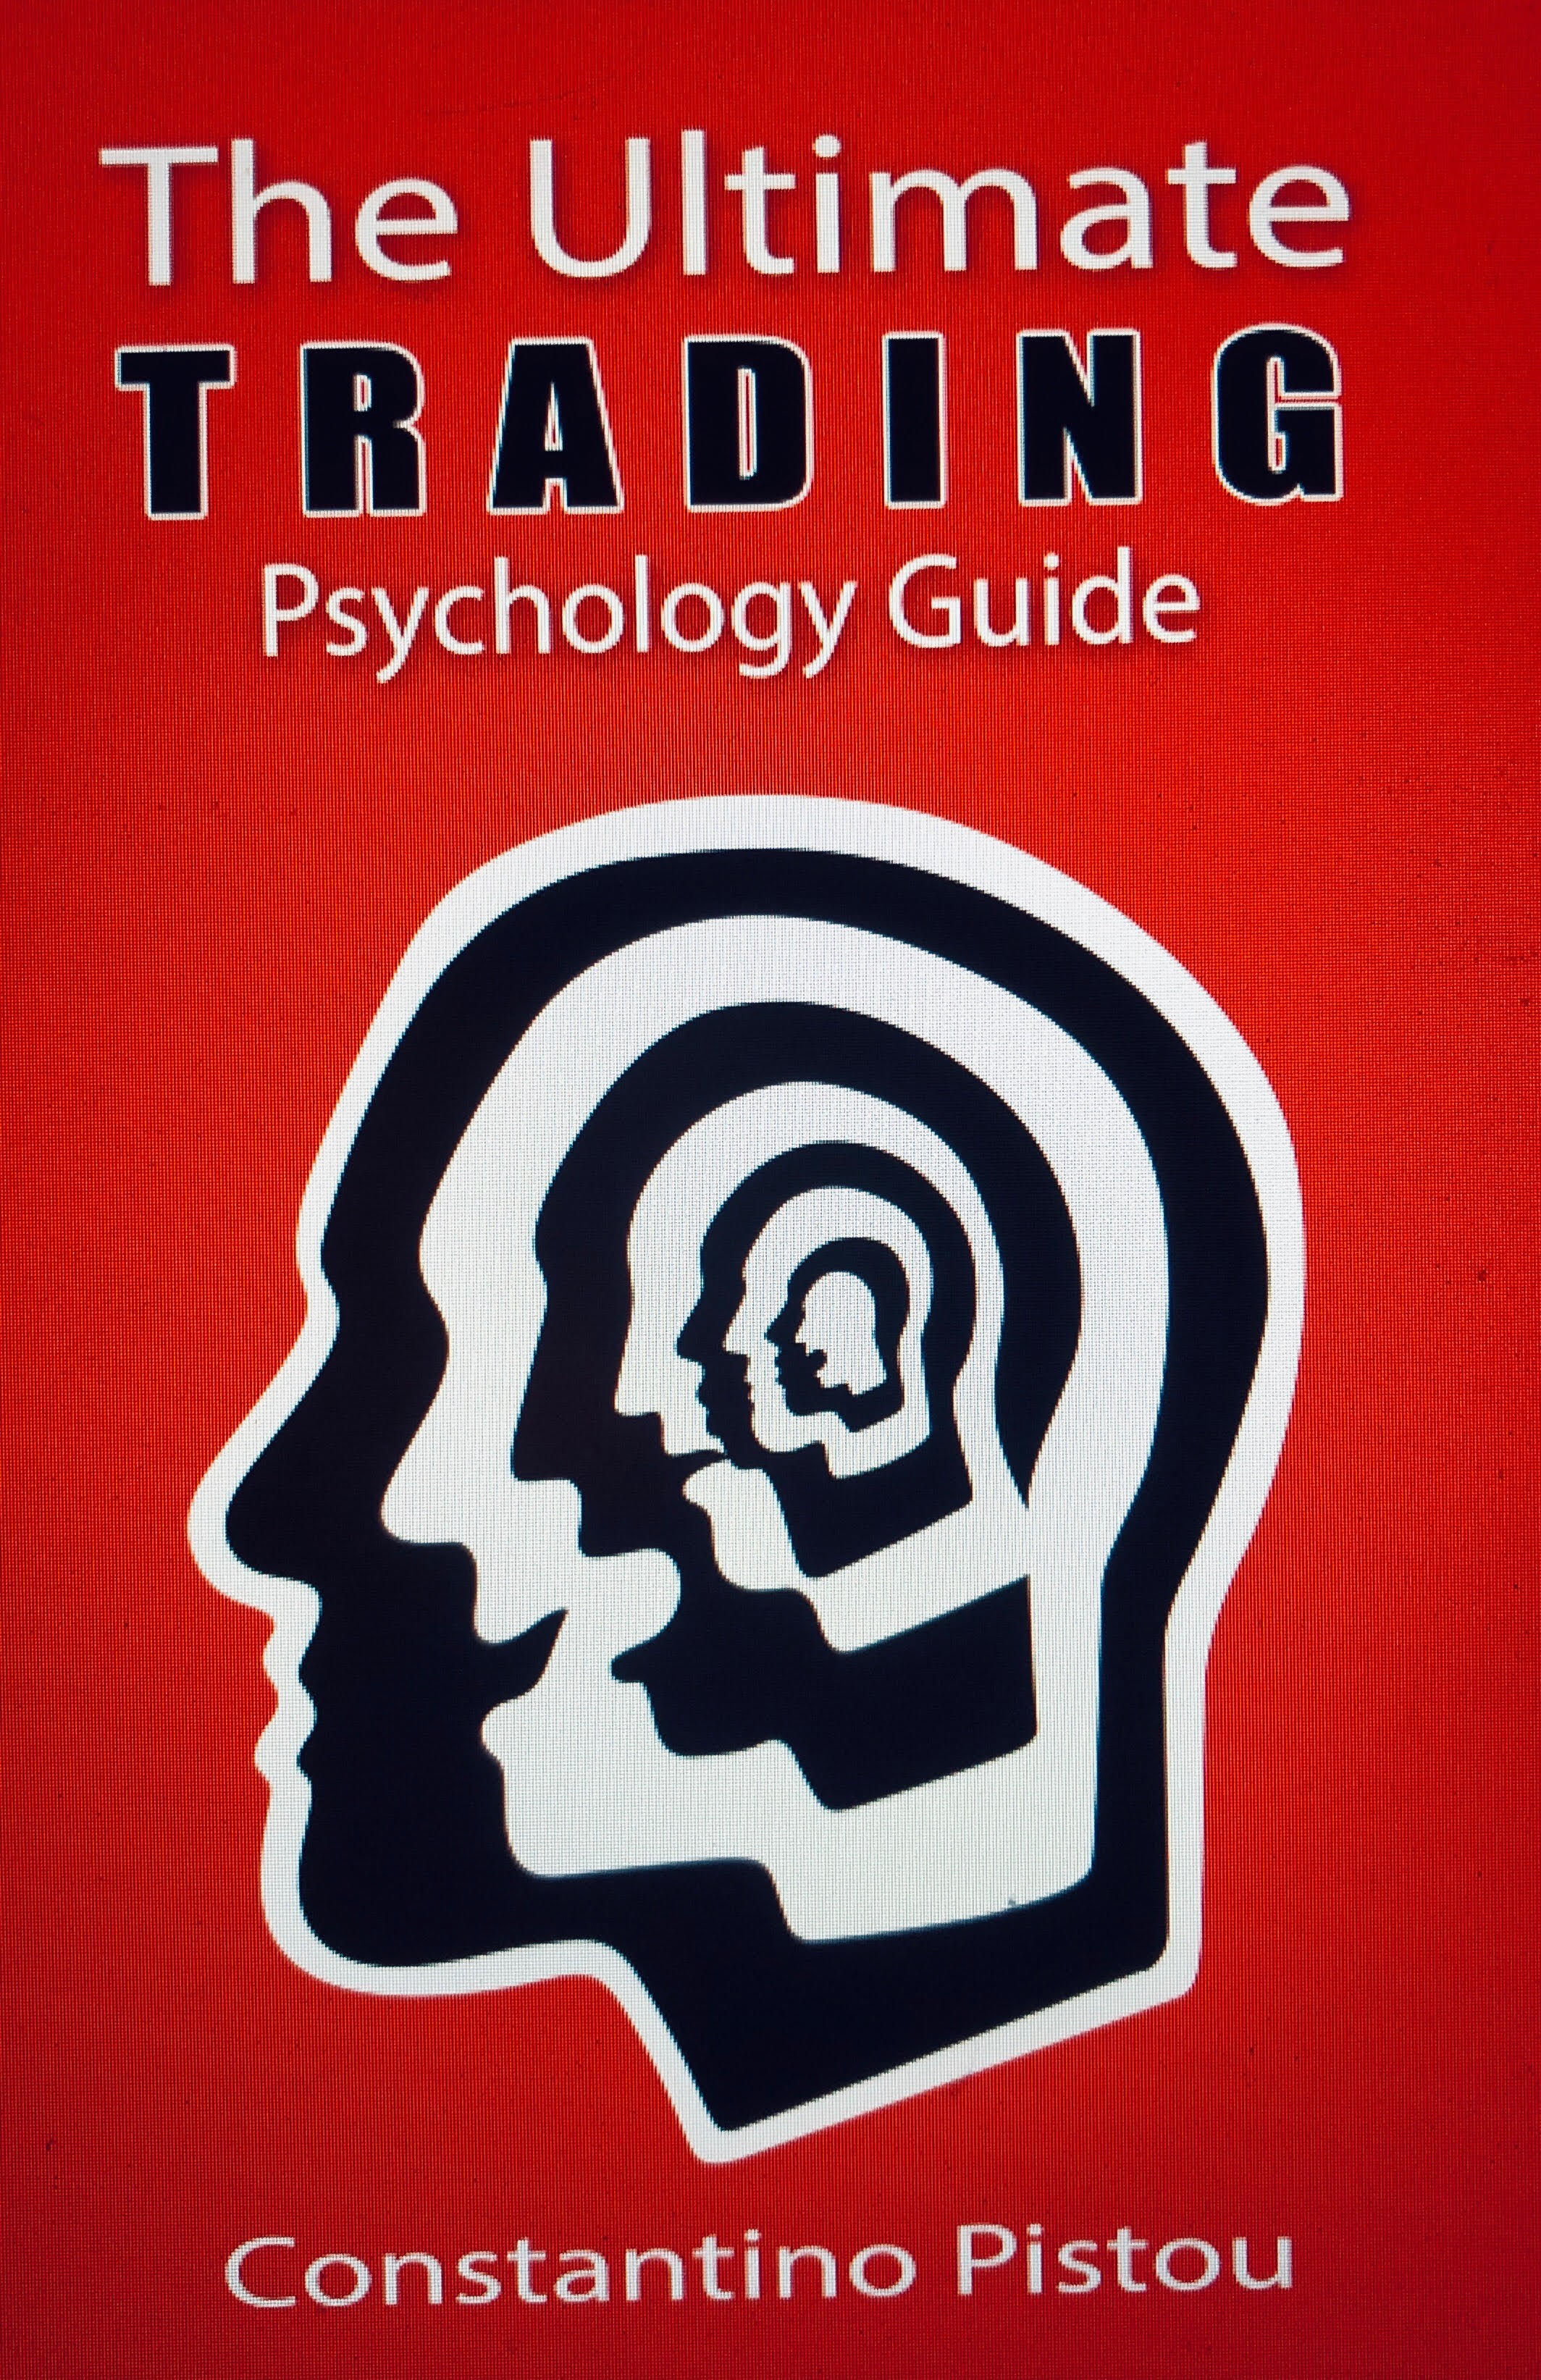 It all starts with your thinking. - Traders Reality has teamed up with Steve Burns from newtraderu.com to bring you The Ultimate Trading Psychology Guide.